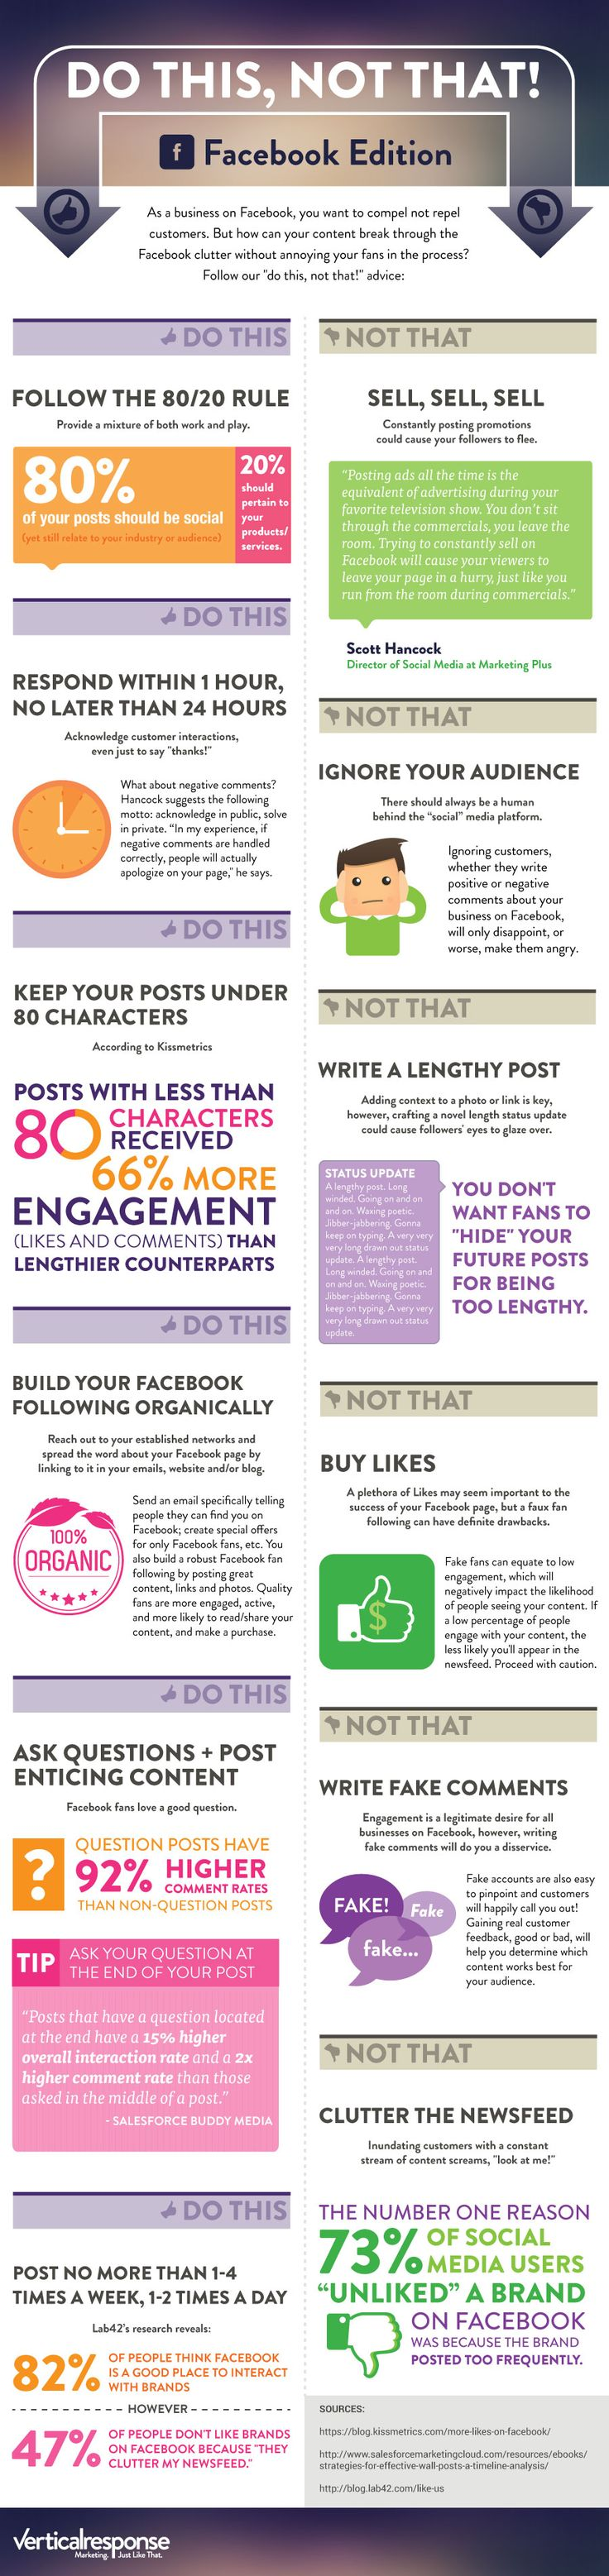 Do this, not that on Facebook. How Your Content Break Through The Facebook Clutter Without Annoying Your Fans [INFOGRAPHIC], infographic: Ho...